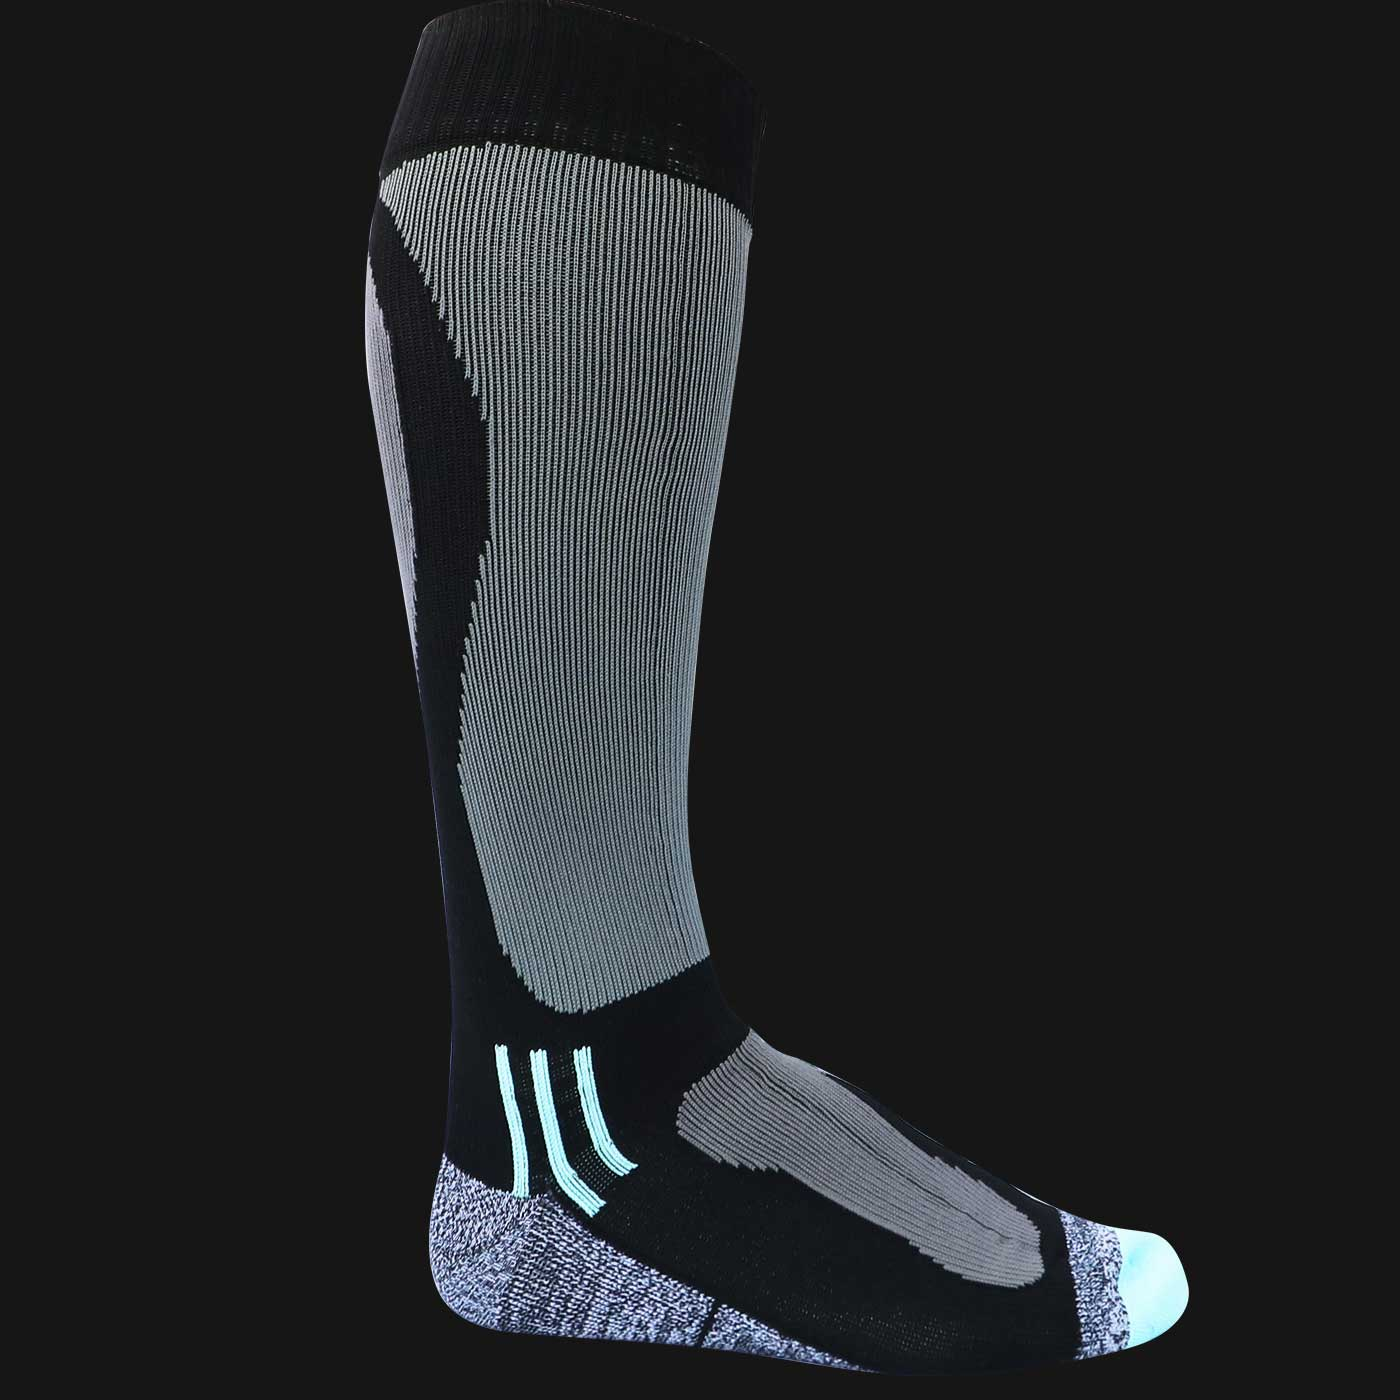 arcticdry-kneelength-waterproof-socks-2